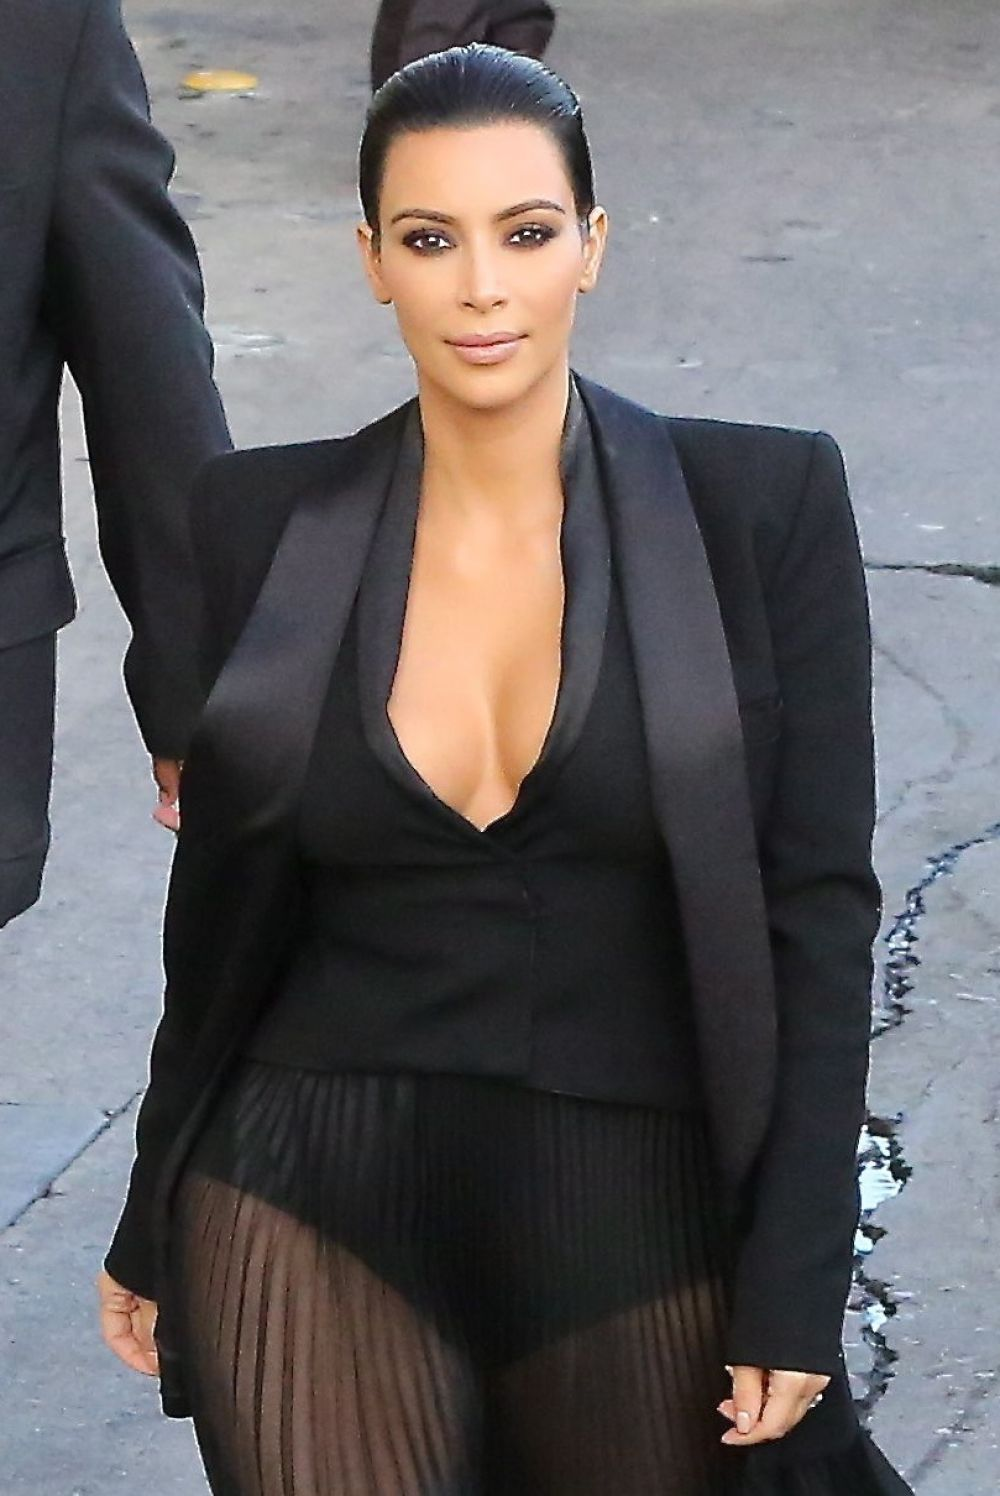 KIM KARDASHIAN Arrives at Jimmy Kimmel Live in Hollywood 04/30/2015